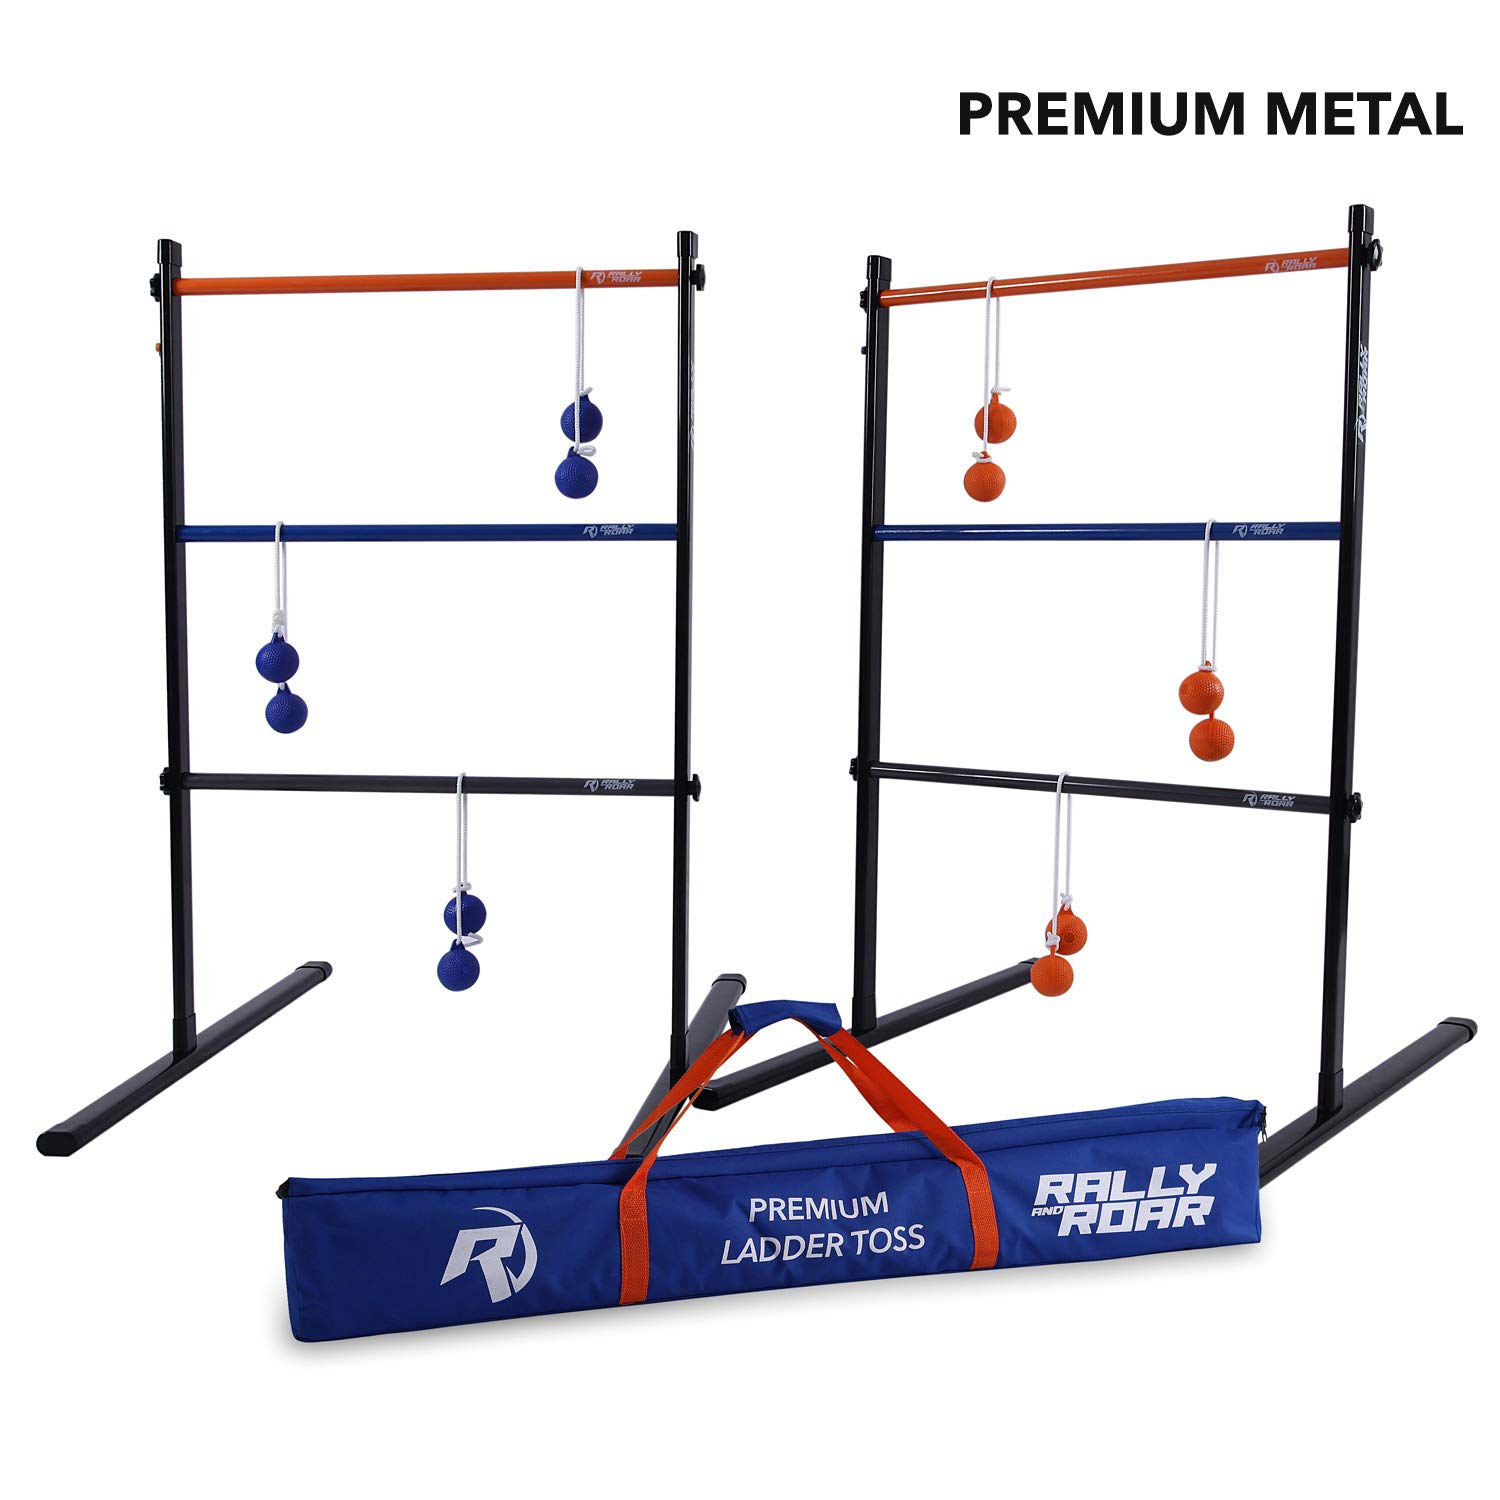 Rally and Roar Metal Ladder Toss Game Set with 2 Targets, 6 Rubber Bolas, Zippered Carrying Case - Premium, Portable Ladder Golf Kit for Families and Adults - Unique Outdoor Lawn Yard Games by Rally and Roar